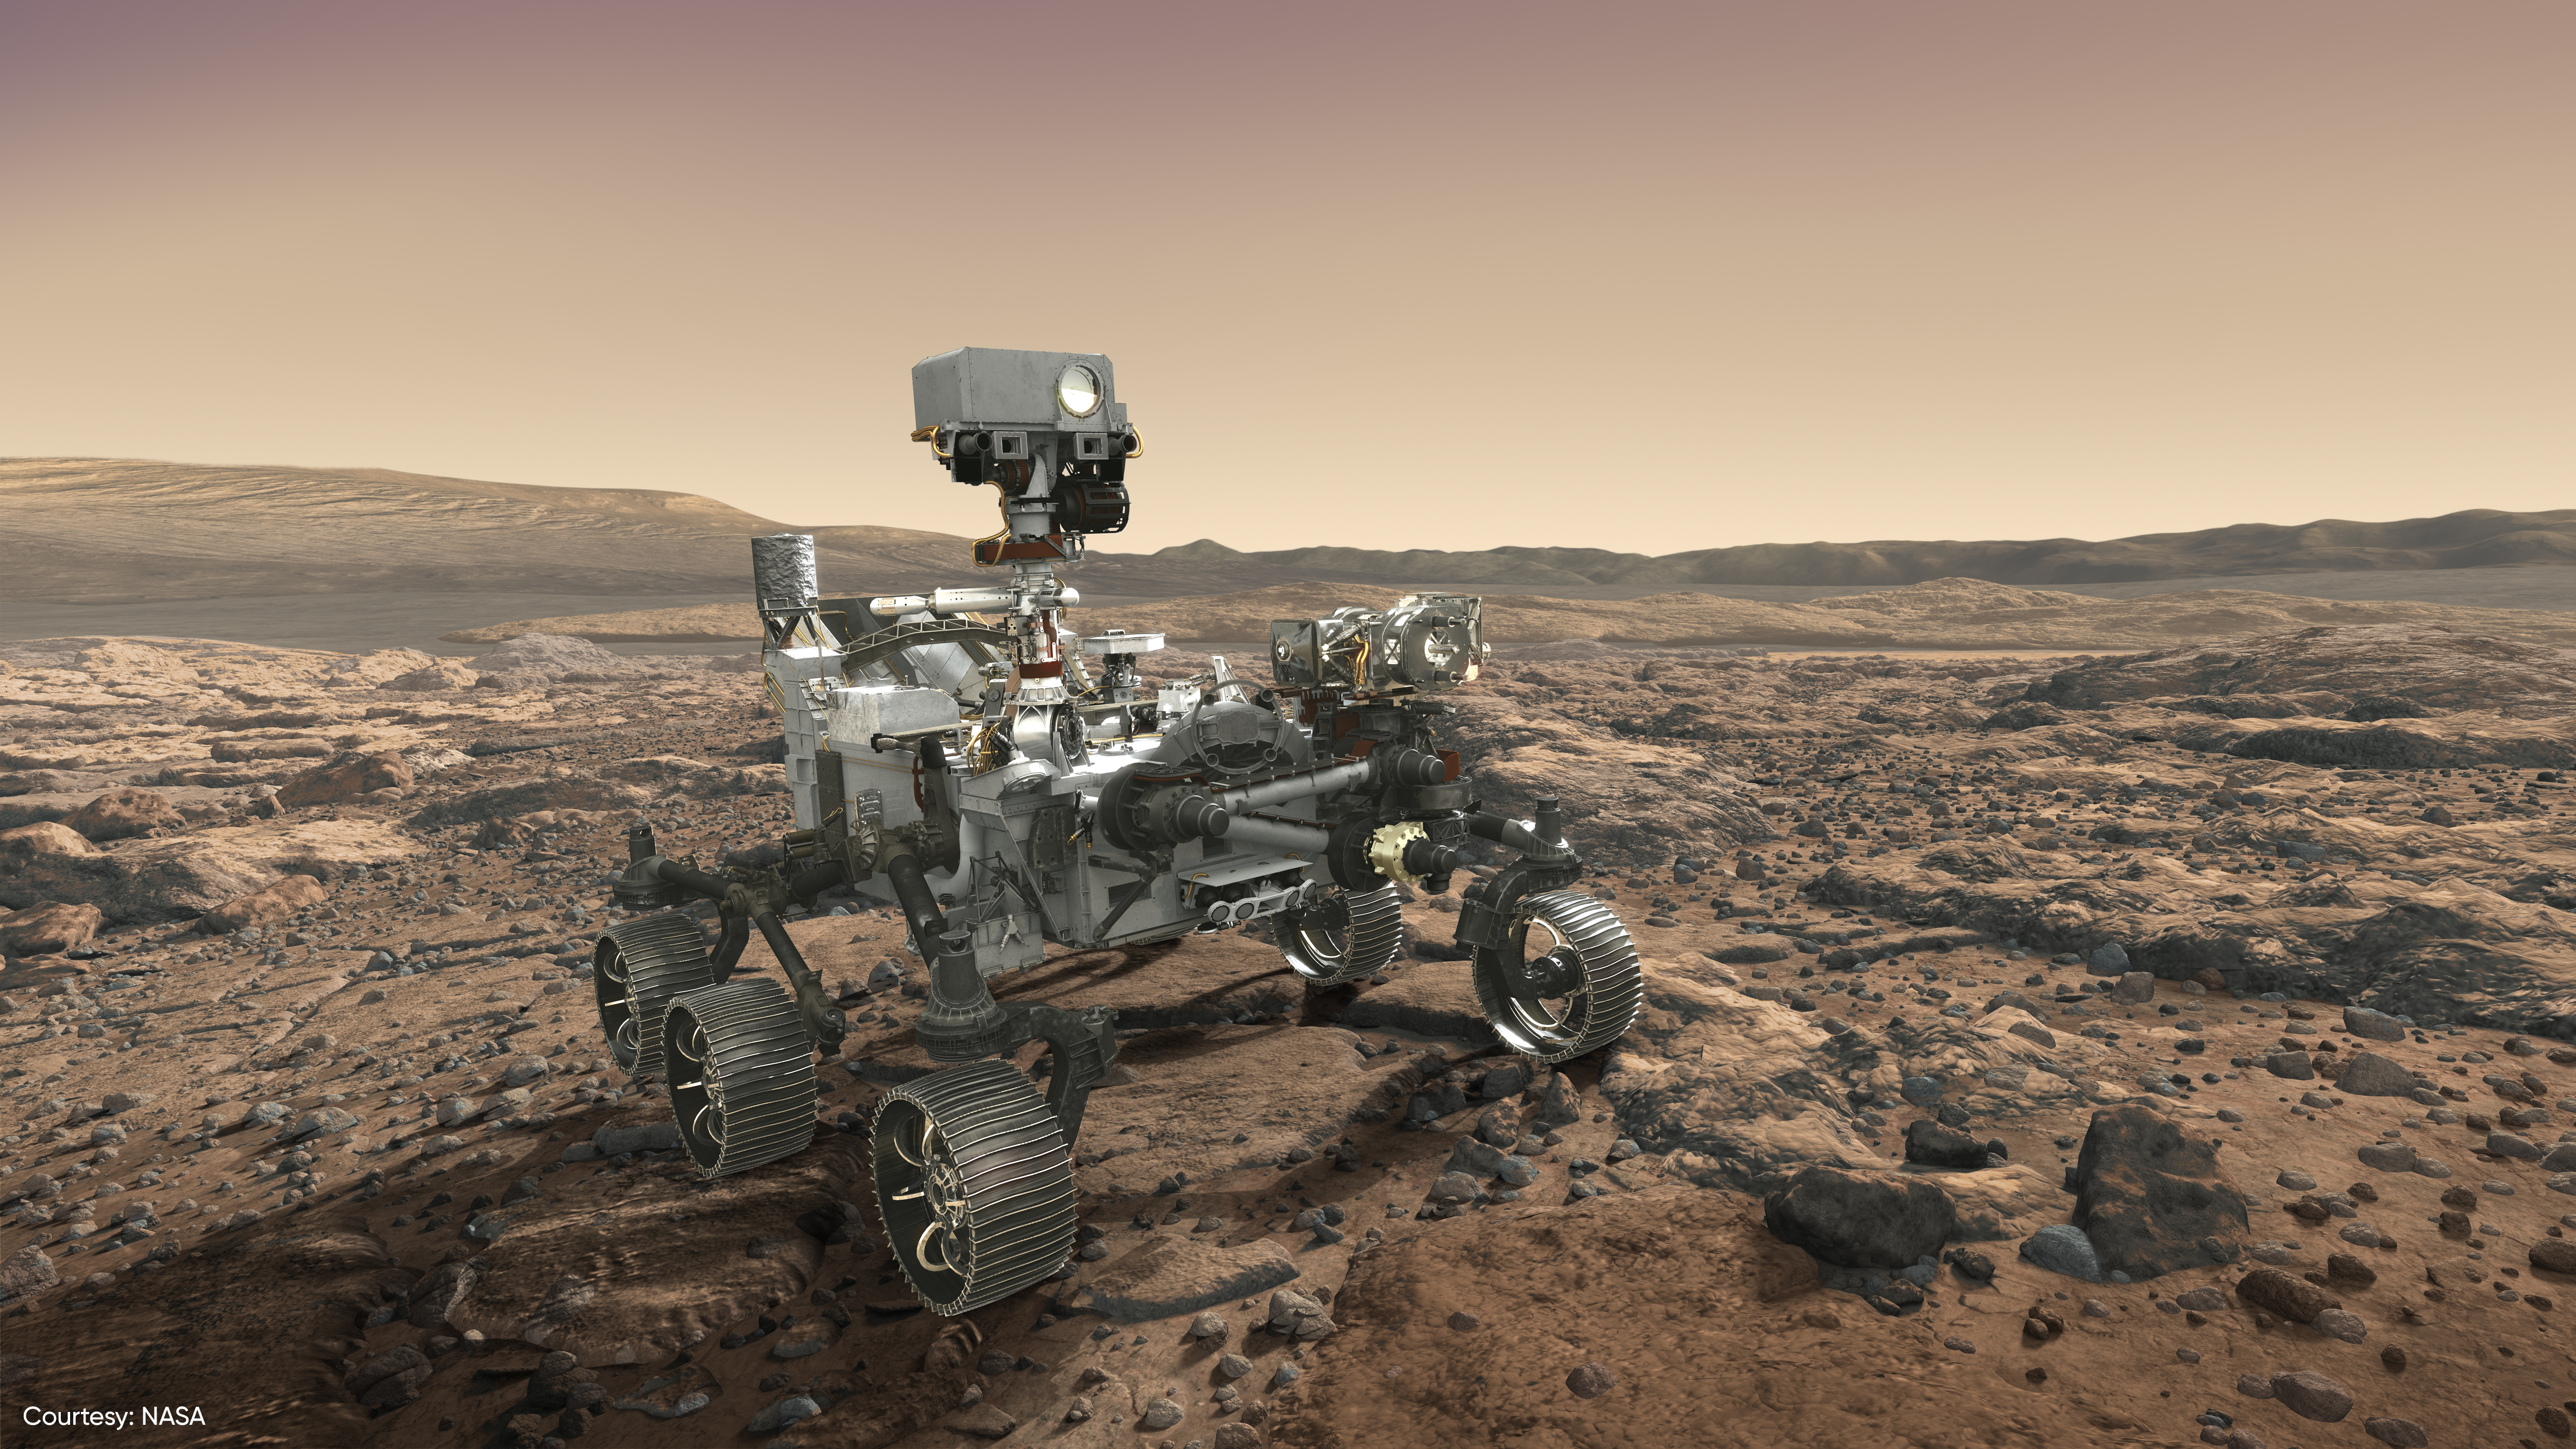 SNC Delivers Critical Hardware for NASA's Mars 2020 Rover